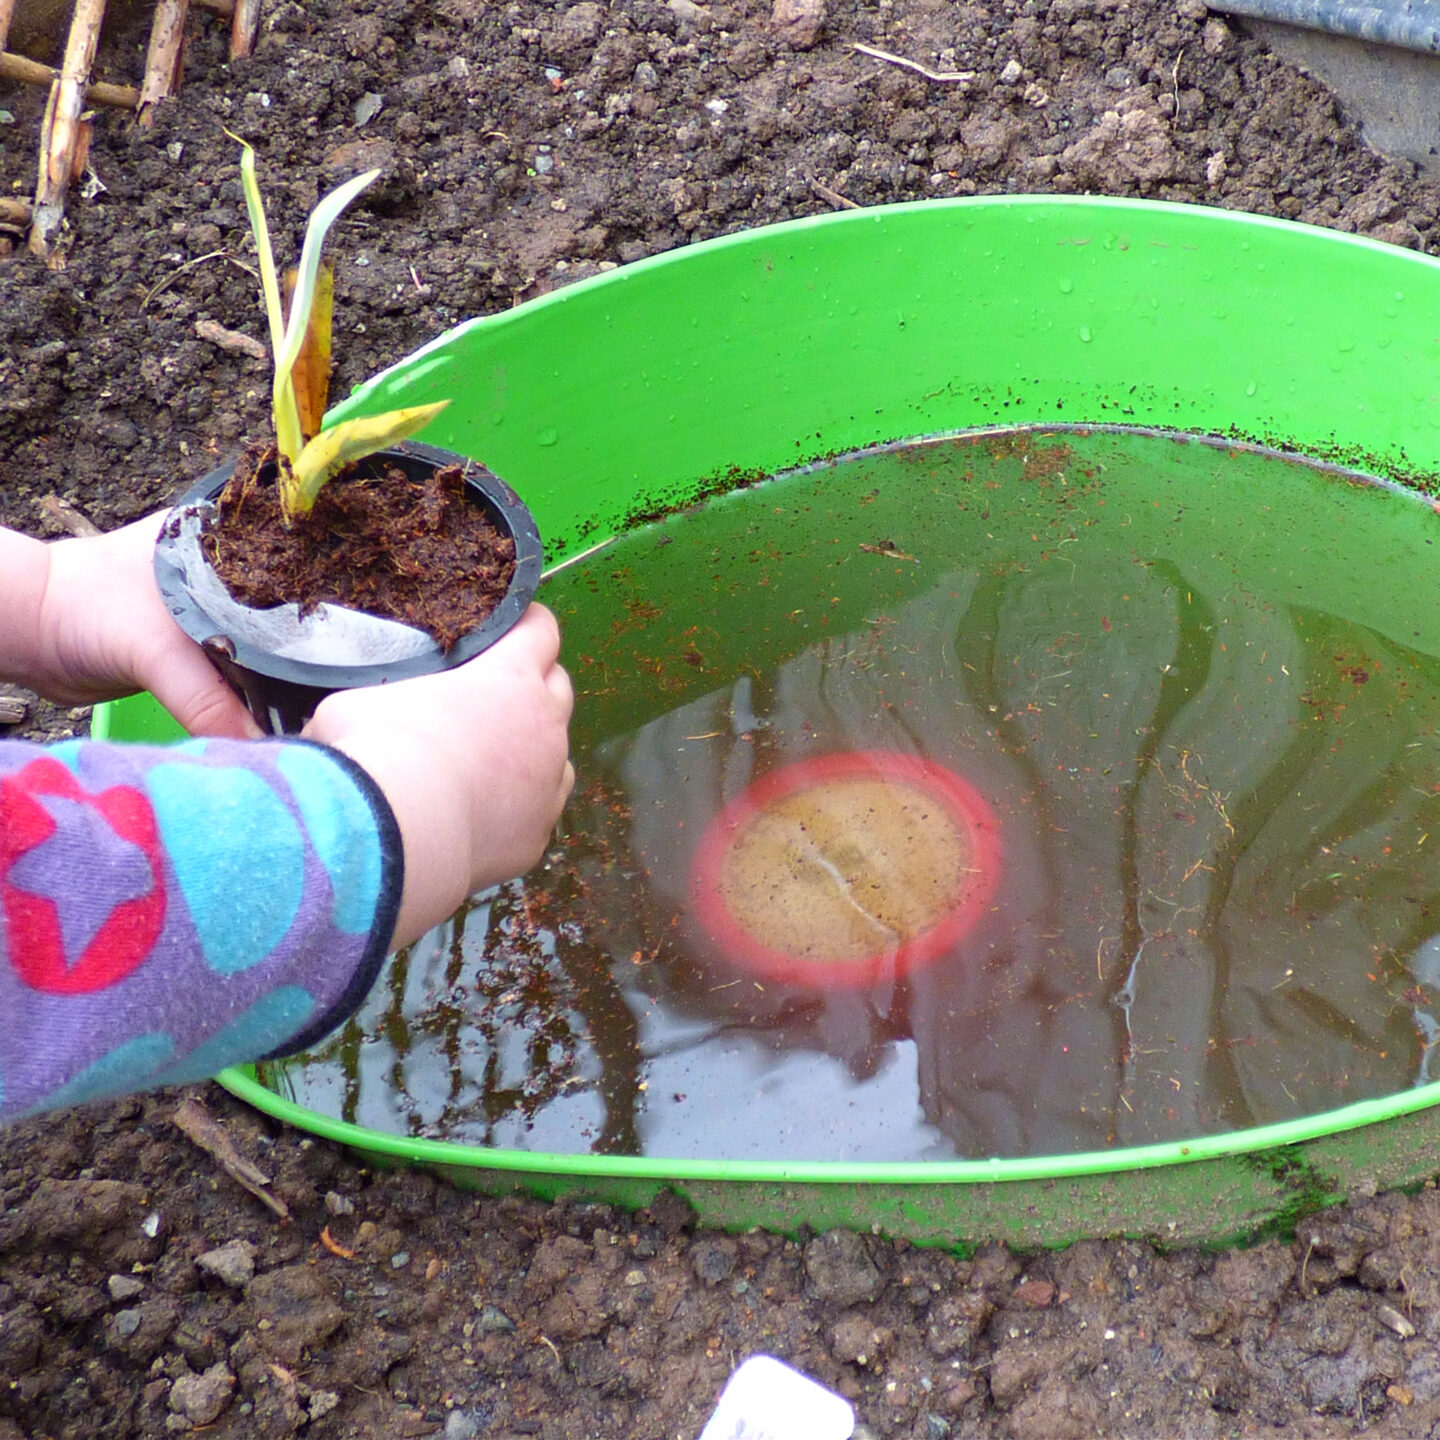 child putting a plant in a container pond